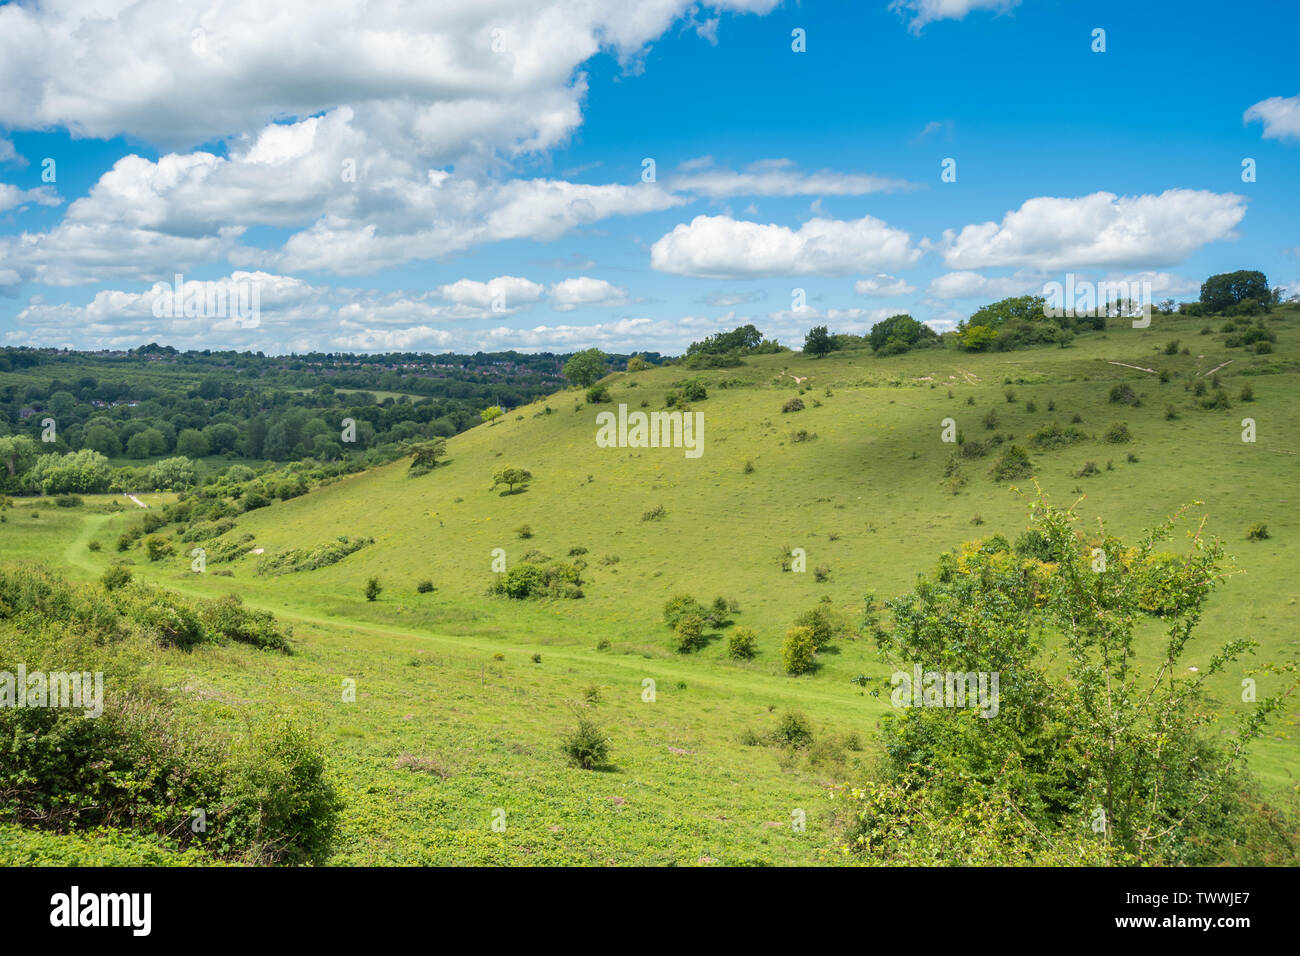 st-catherines-hill-landscape-view-in-the-south-downs-national-park-hampshire-uk-on-a-sunny-summer-day-TWWJE7.jpg